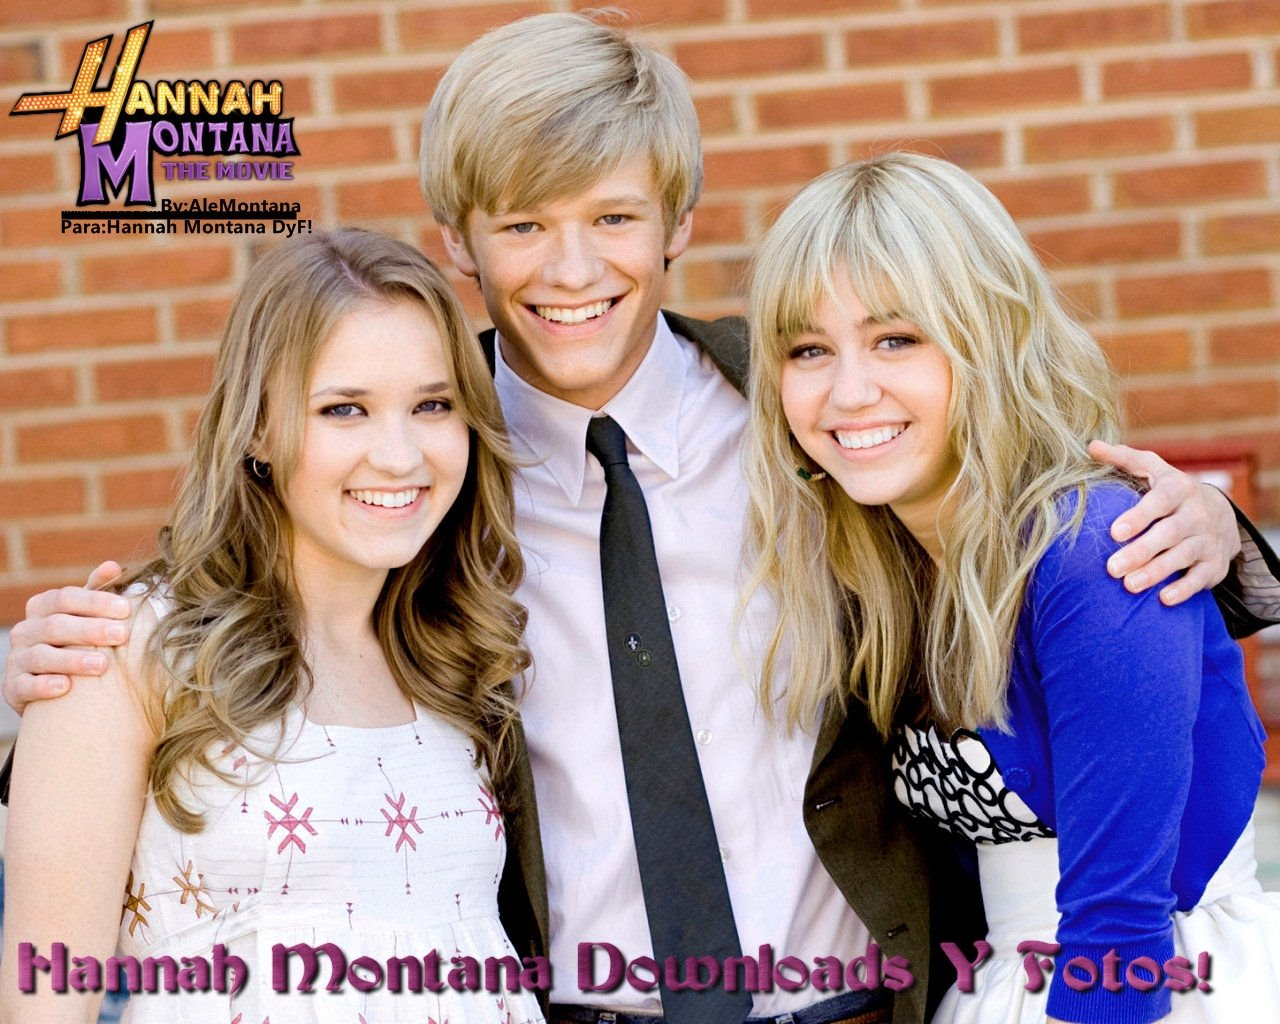 hannah montana downloads y fotos!